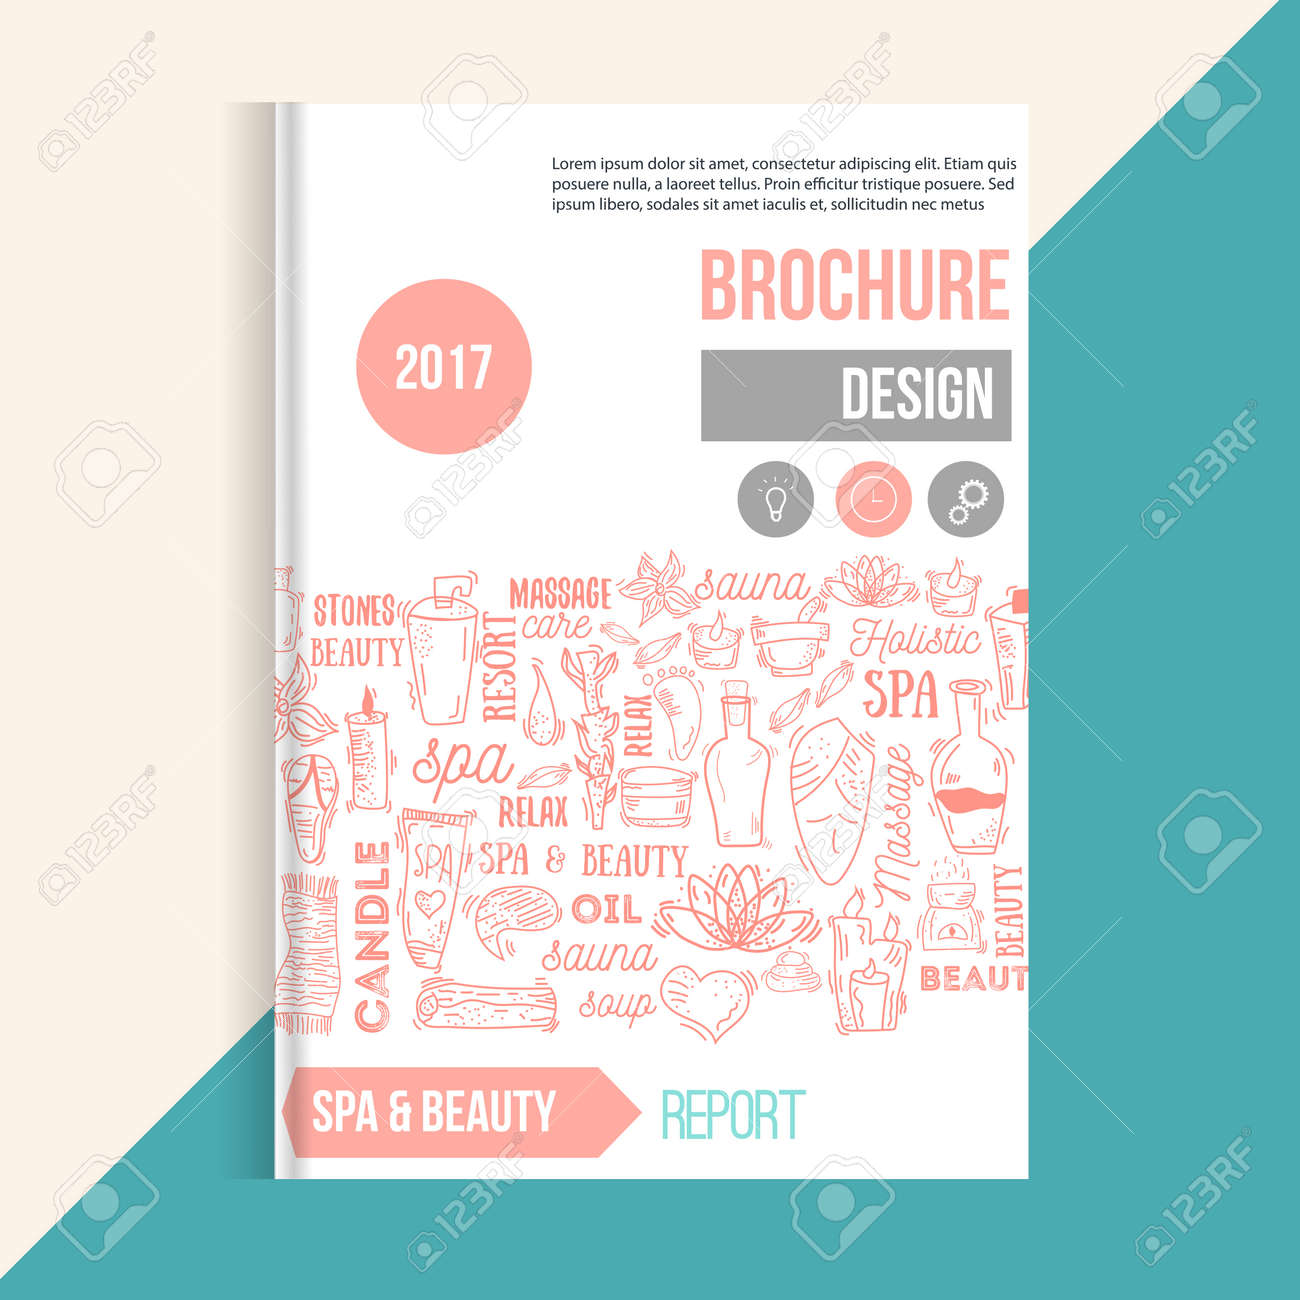 Wellness Spa Brochure Template With Hand Drawn Lettering And - Spa brochure template